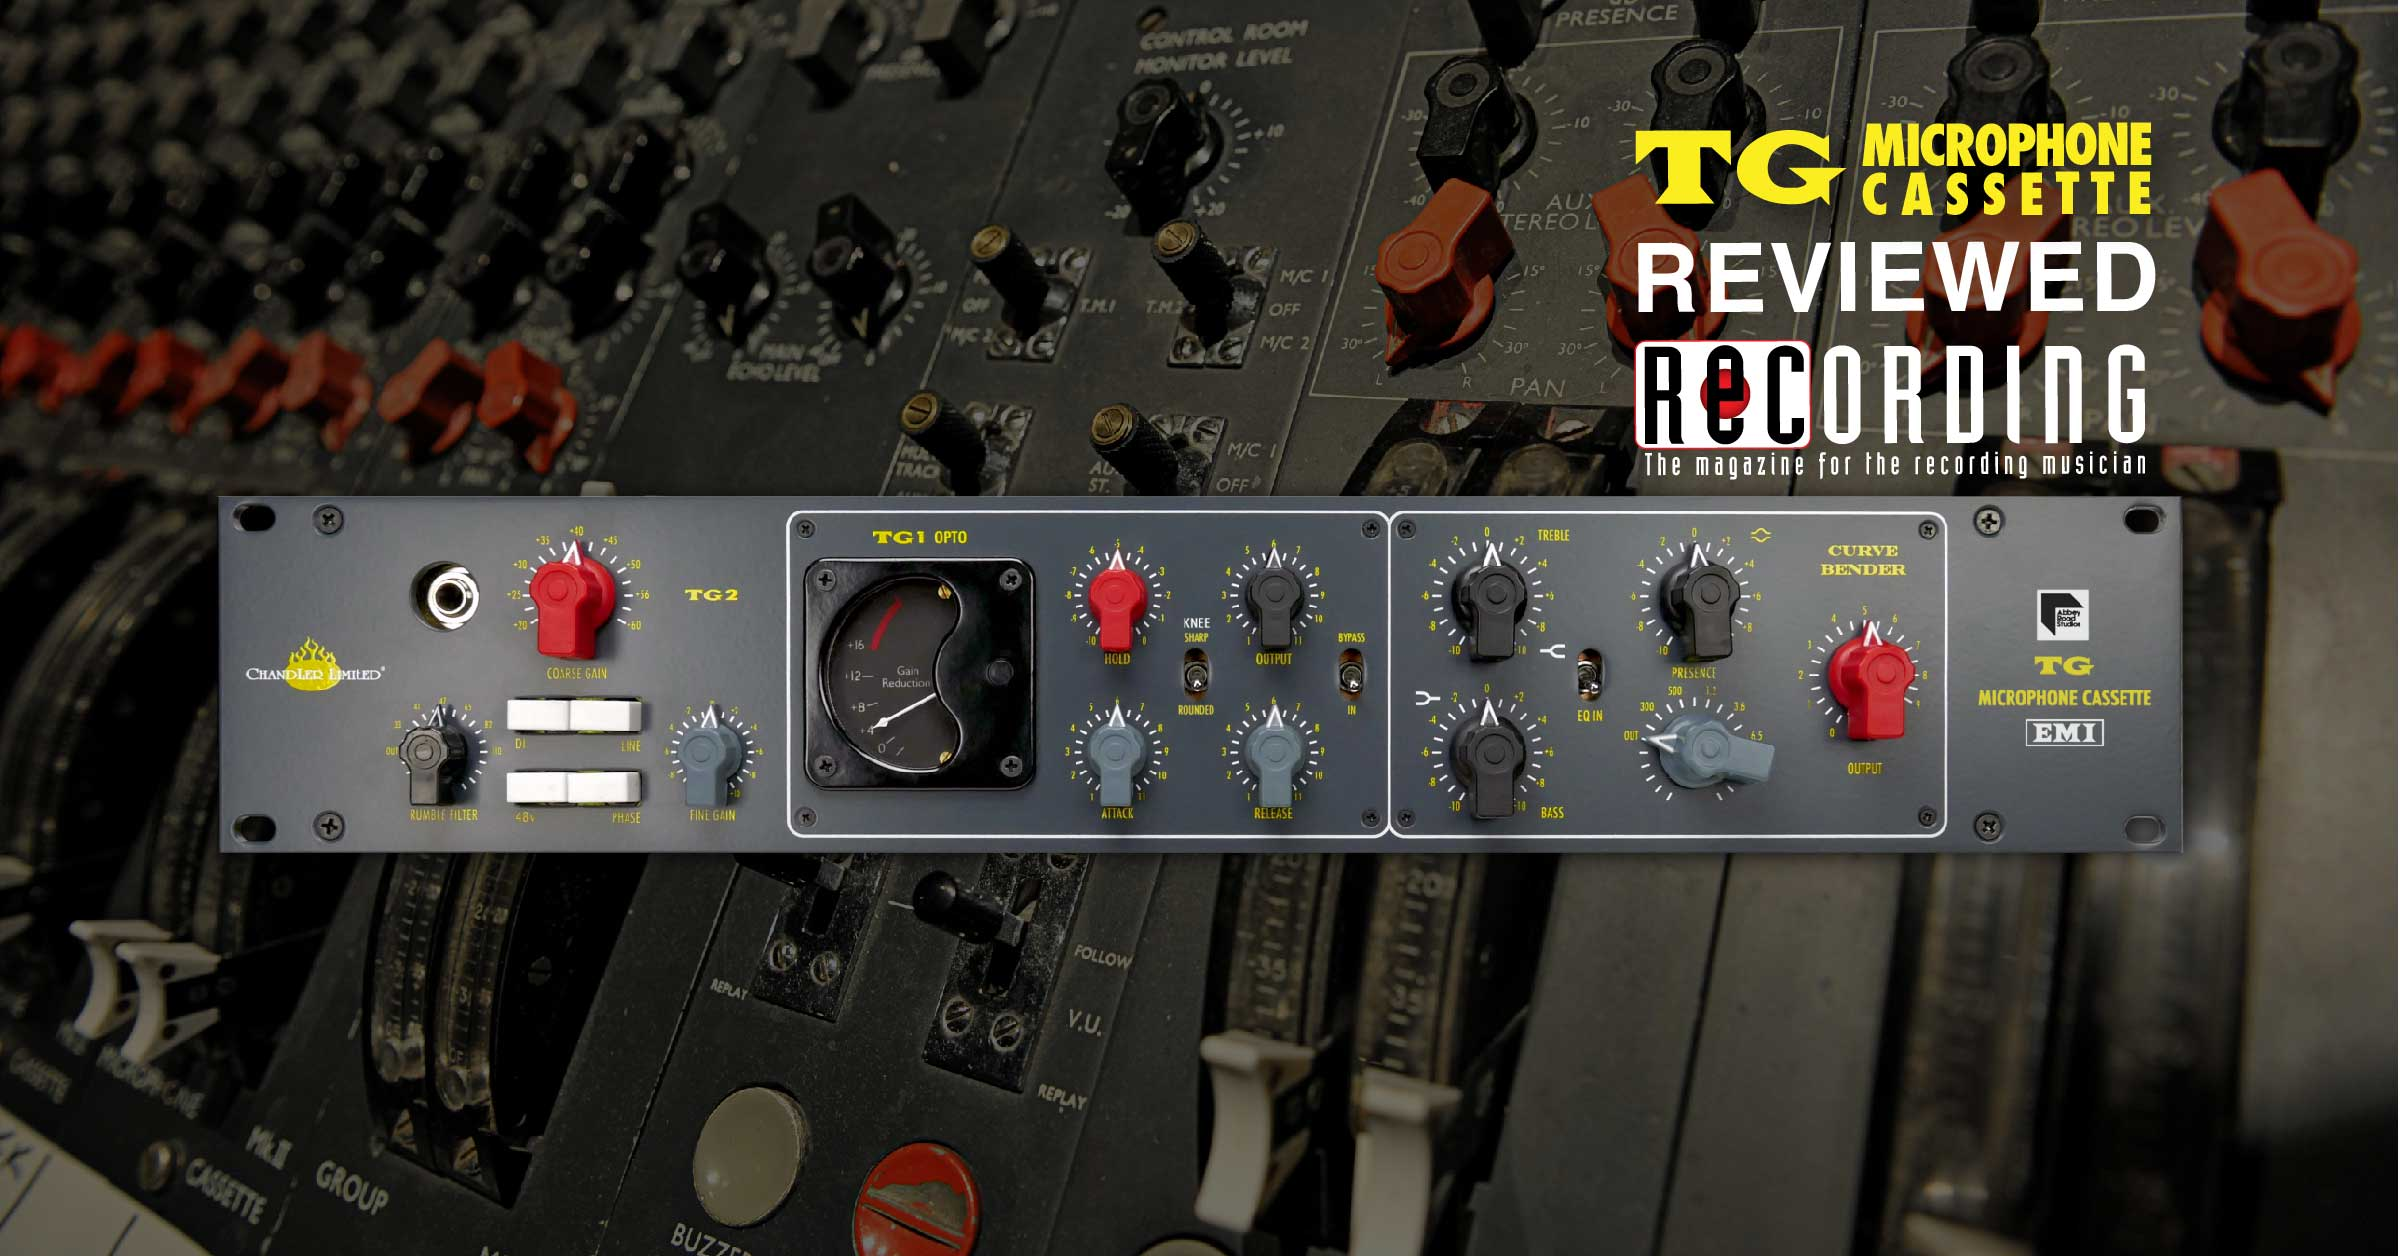 Chandler Limited Abbey Road Tg Microphone Cassette Recording Audio Circuits July 2009 Amplifier Circuit Equalizer Mixer Emi Studios Magazine